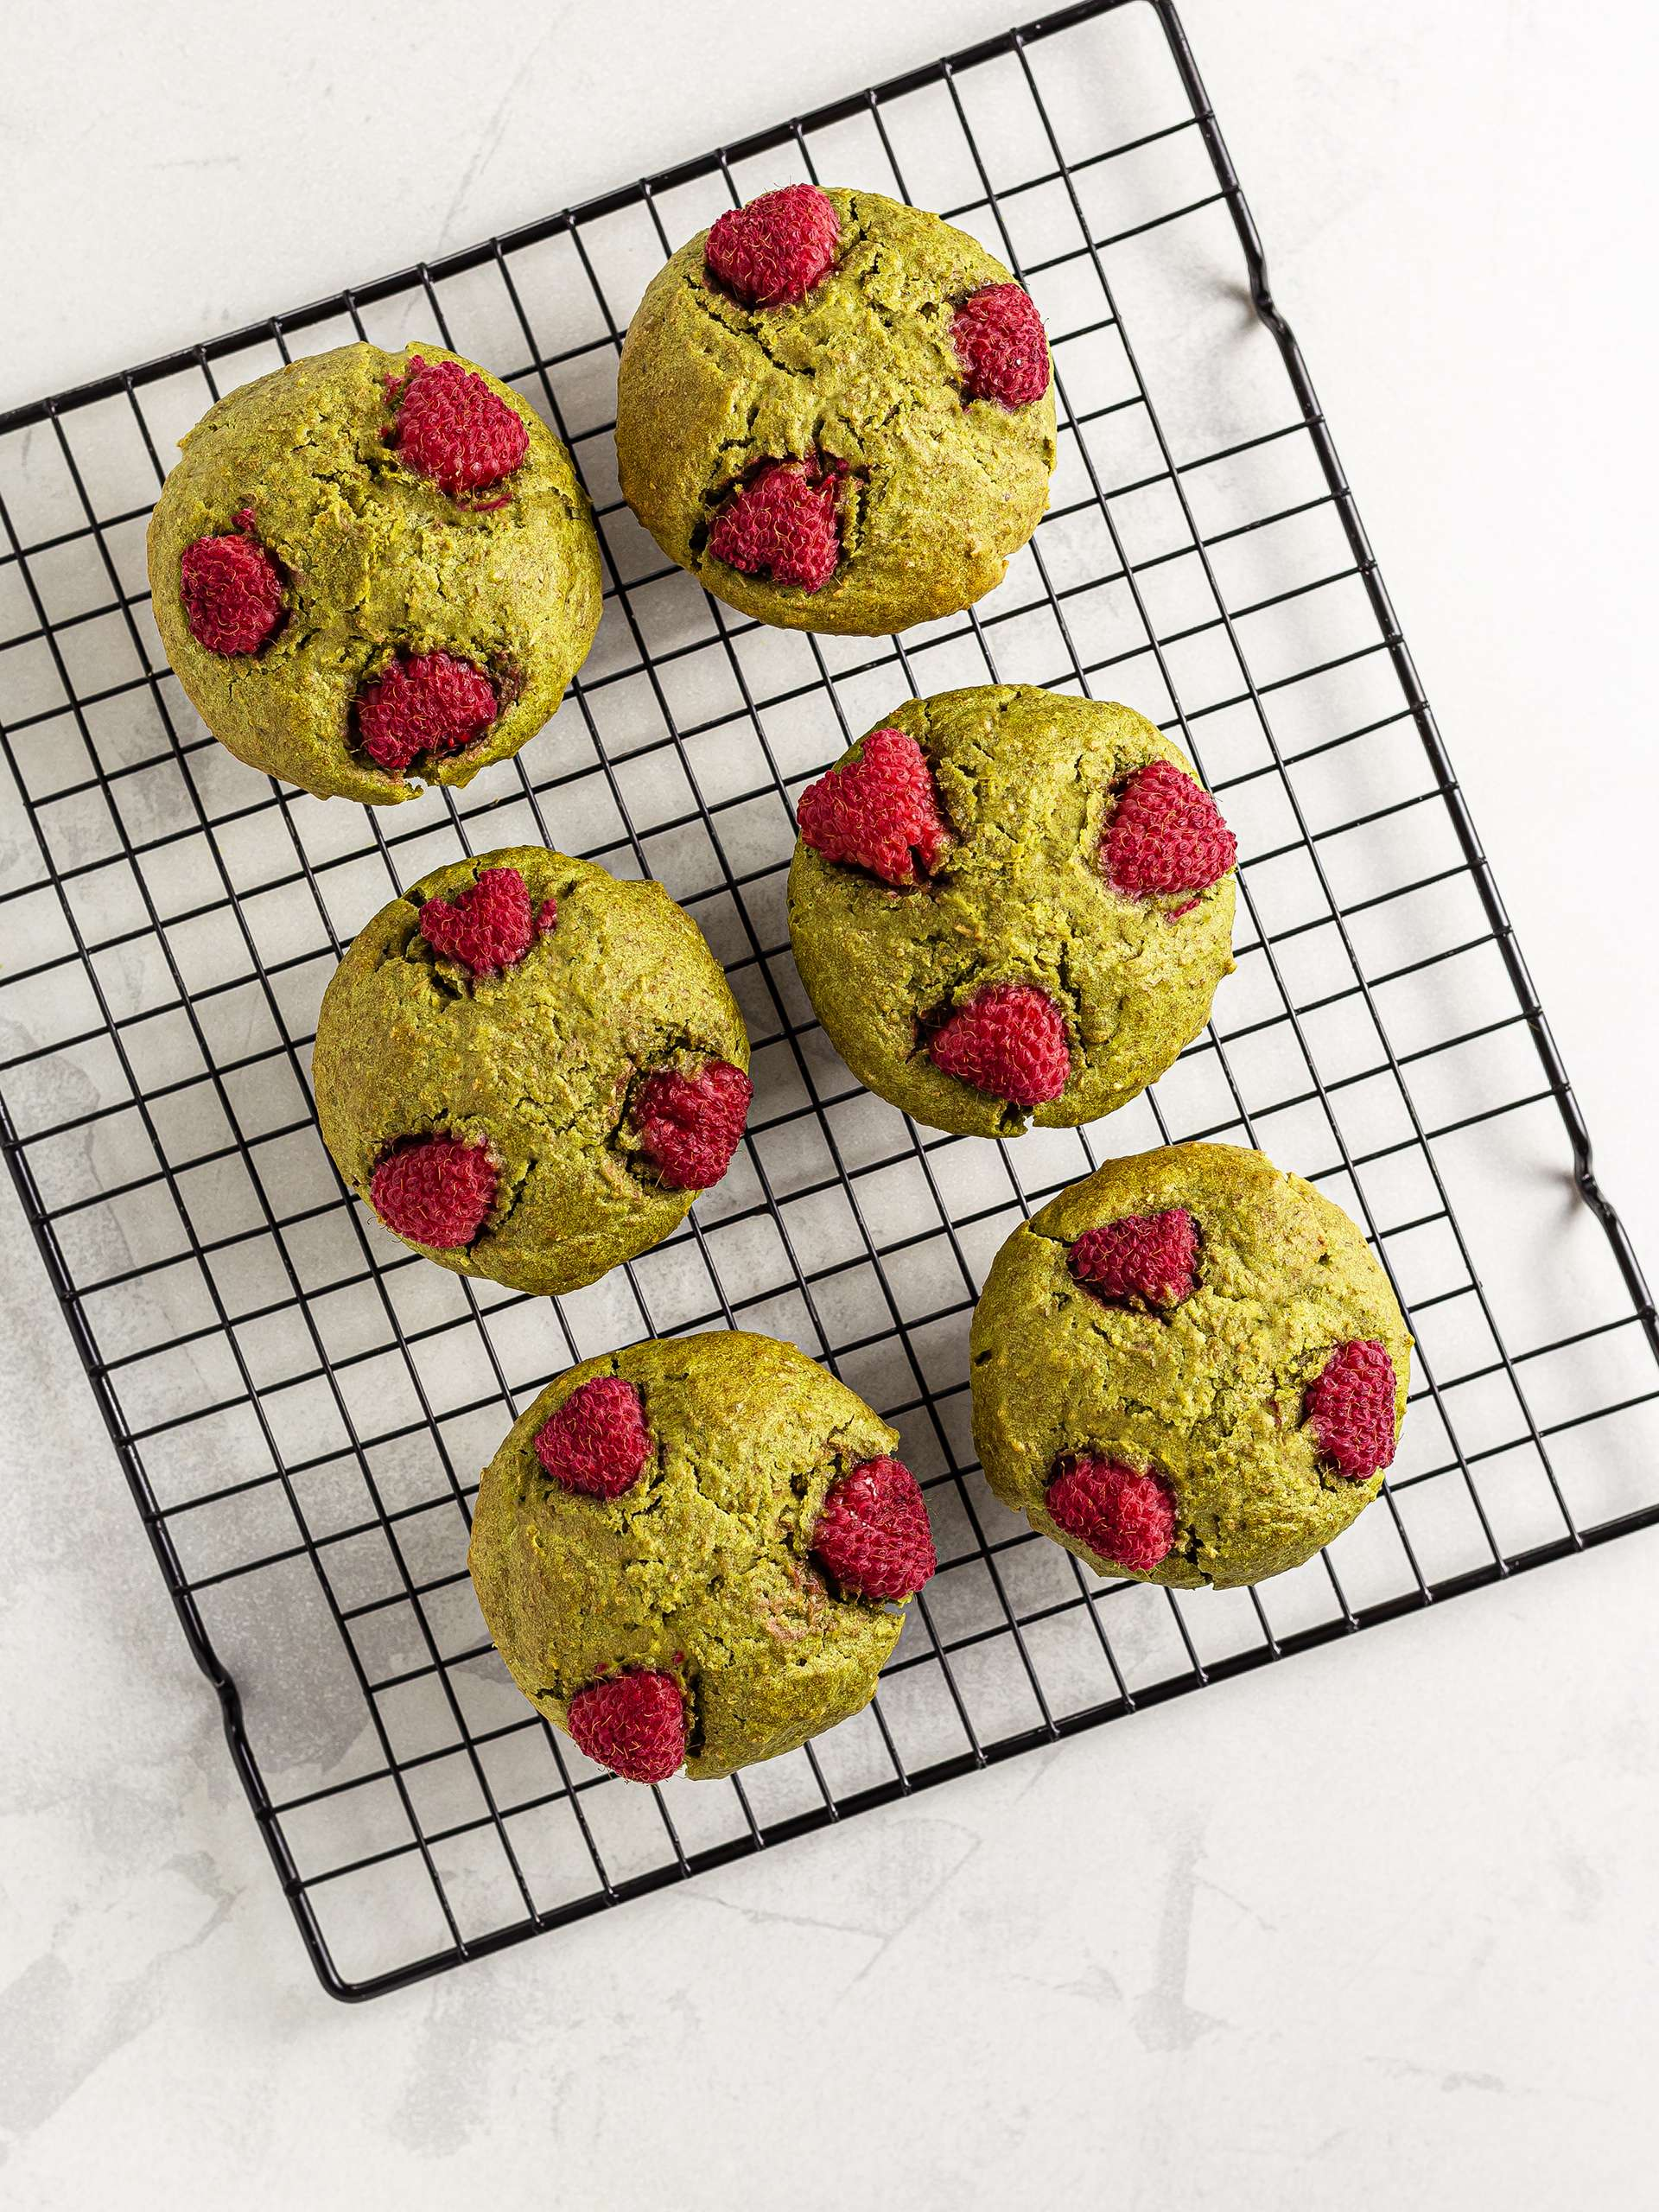 baked vegan matcha muffins on a wire rack